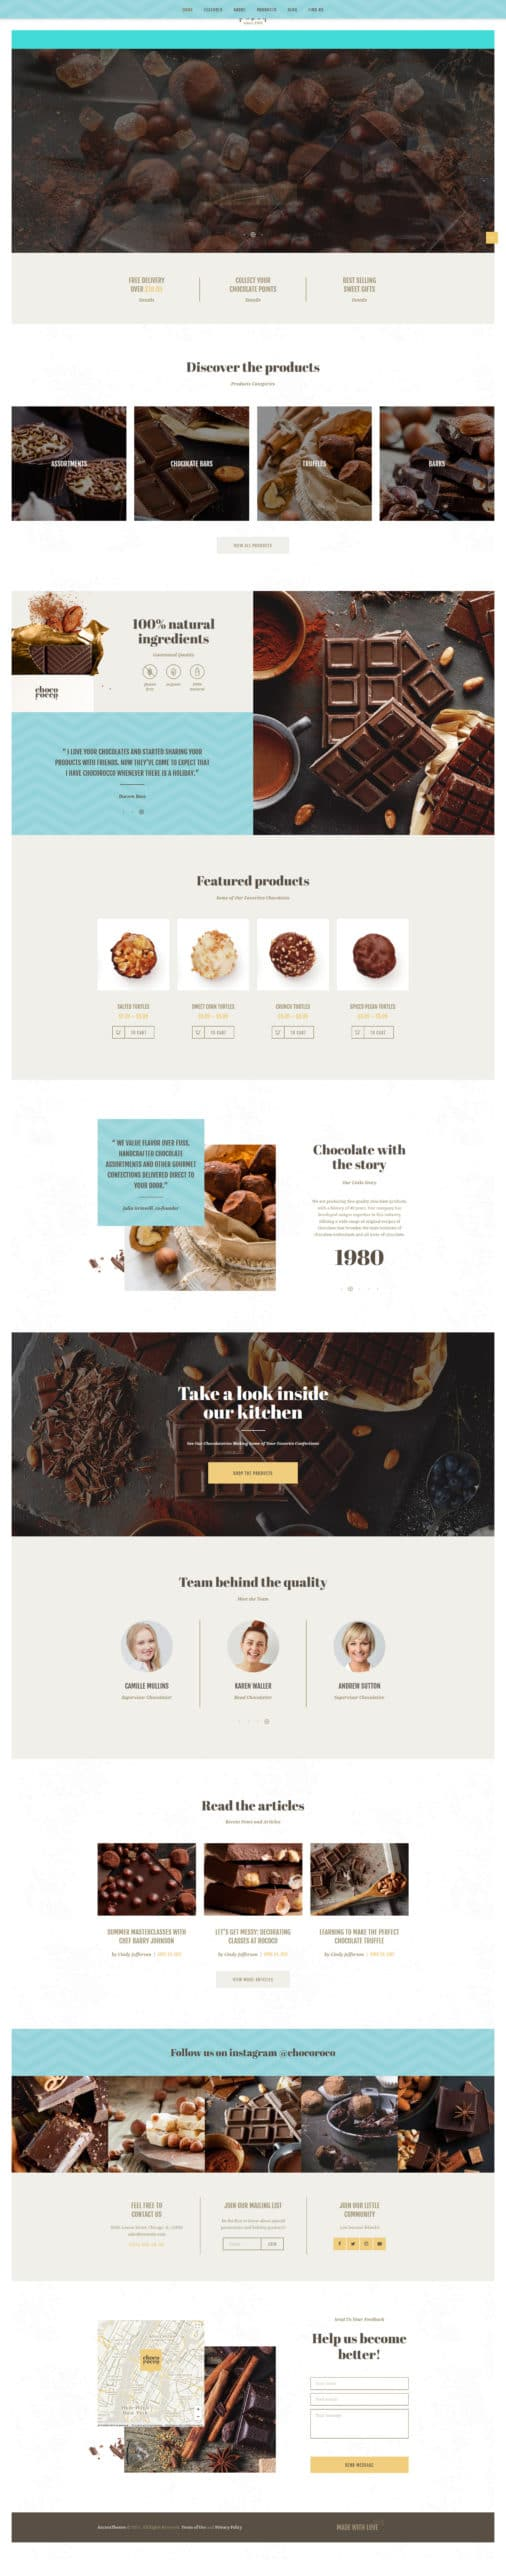 ChocoRocco | Chocolate Sweets & Candy Store WordPress Theme Website Template